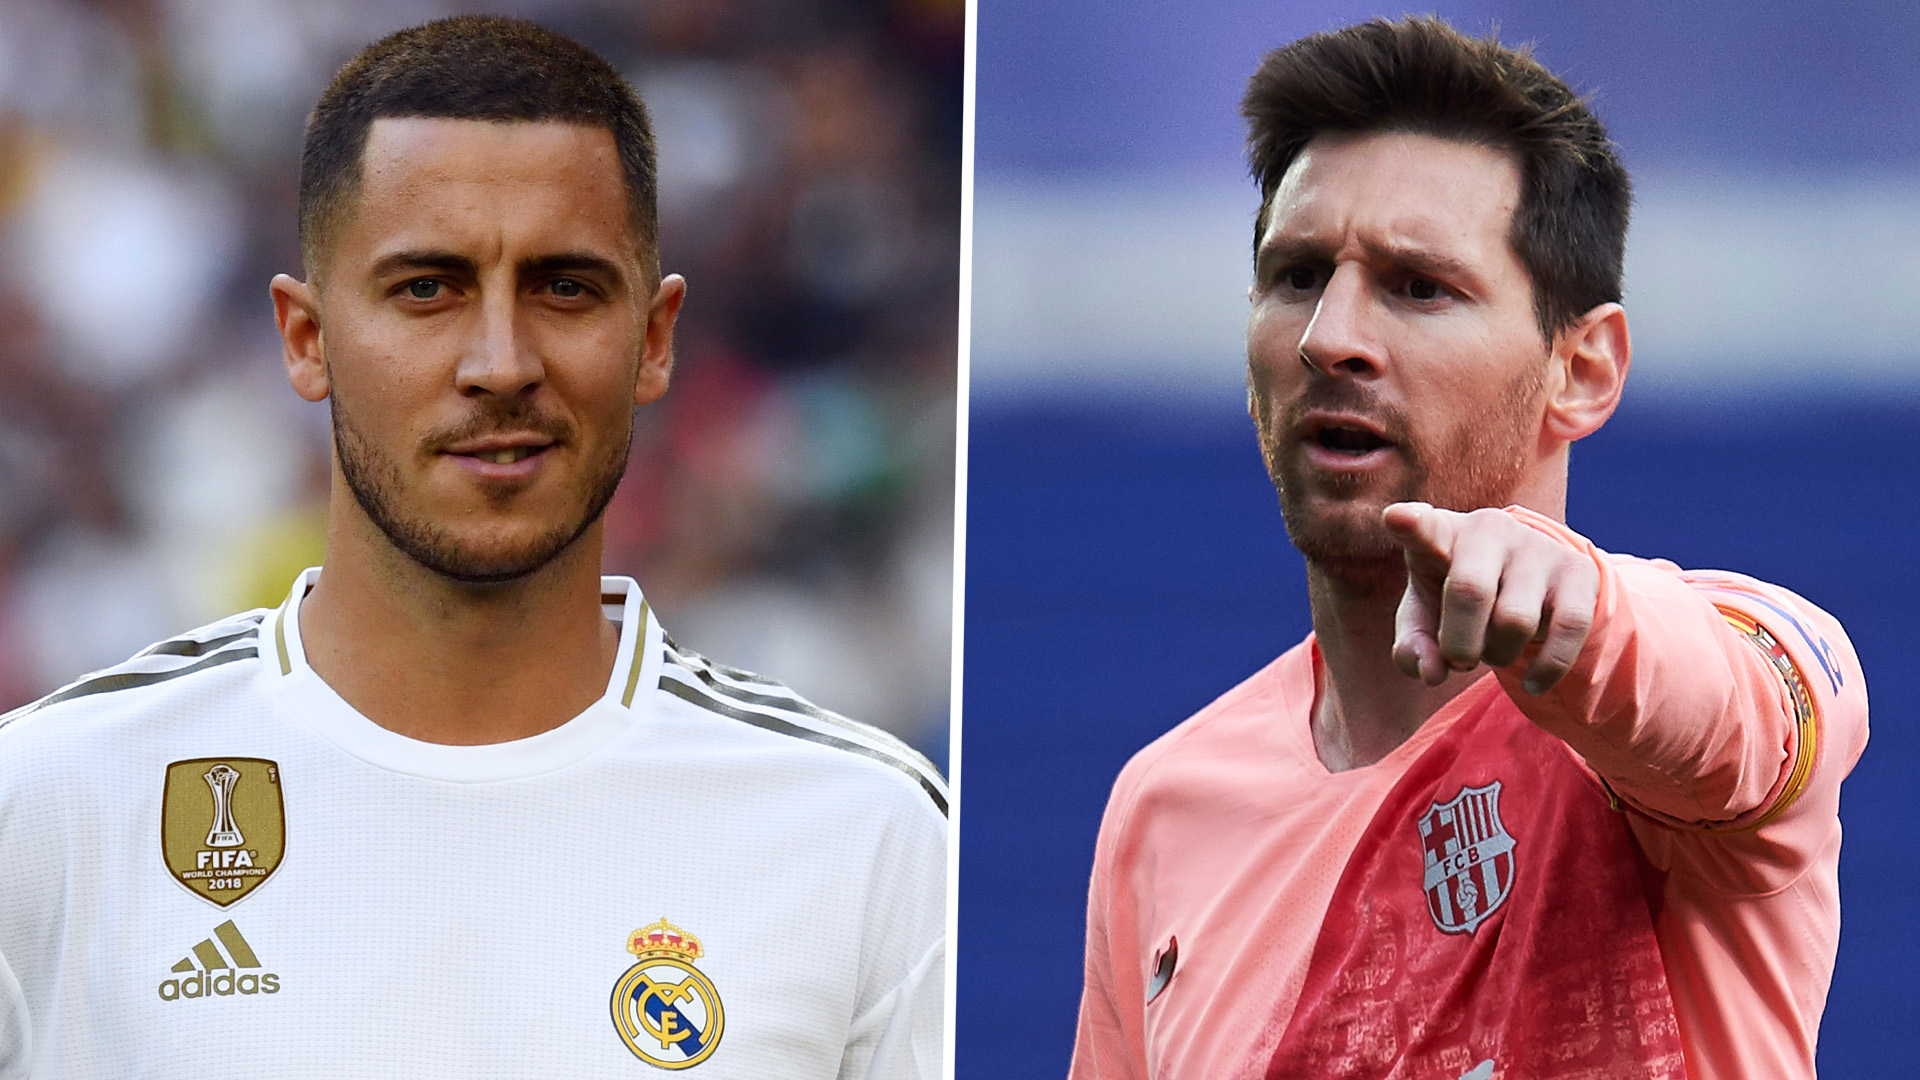 Real Madrid news: Eden Hazard is almost at Lionel Messi's level ...